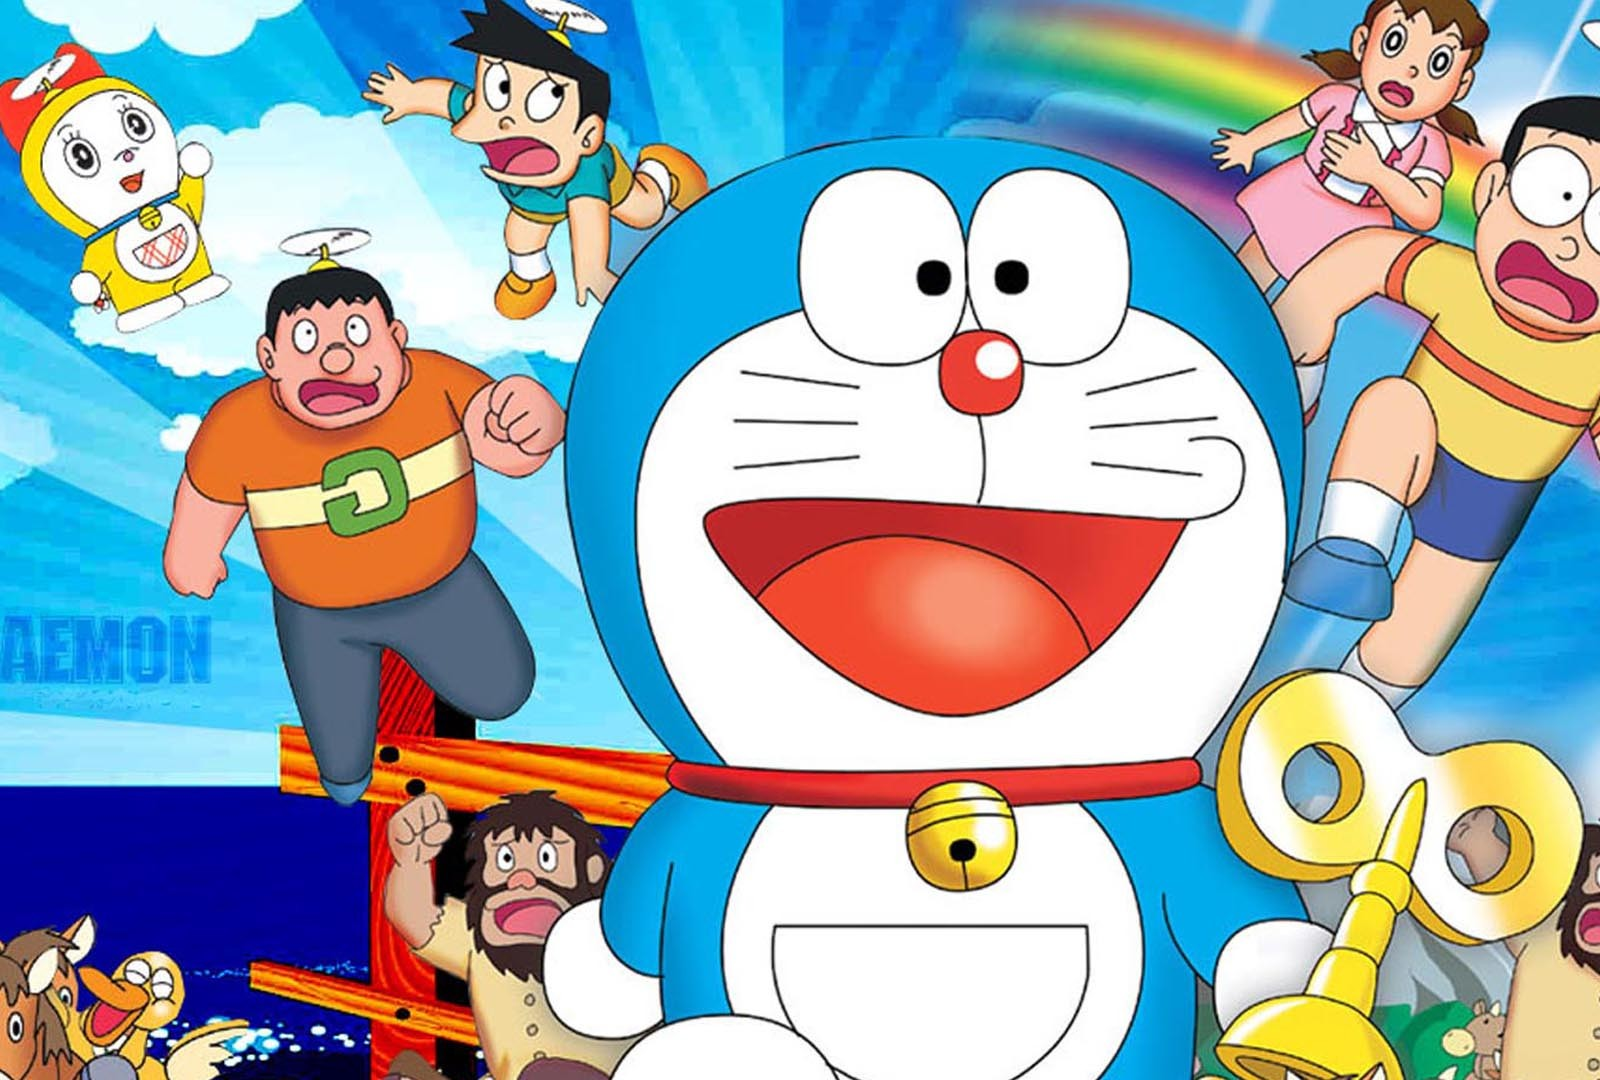 Doraemon 3d Cartoon Hd For Android Wallpaper Desktop Hd Wallpaper